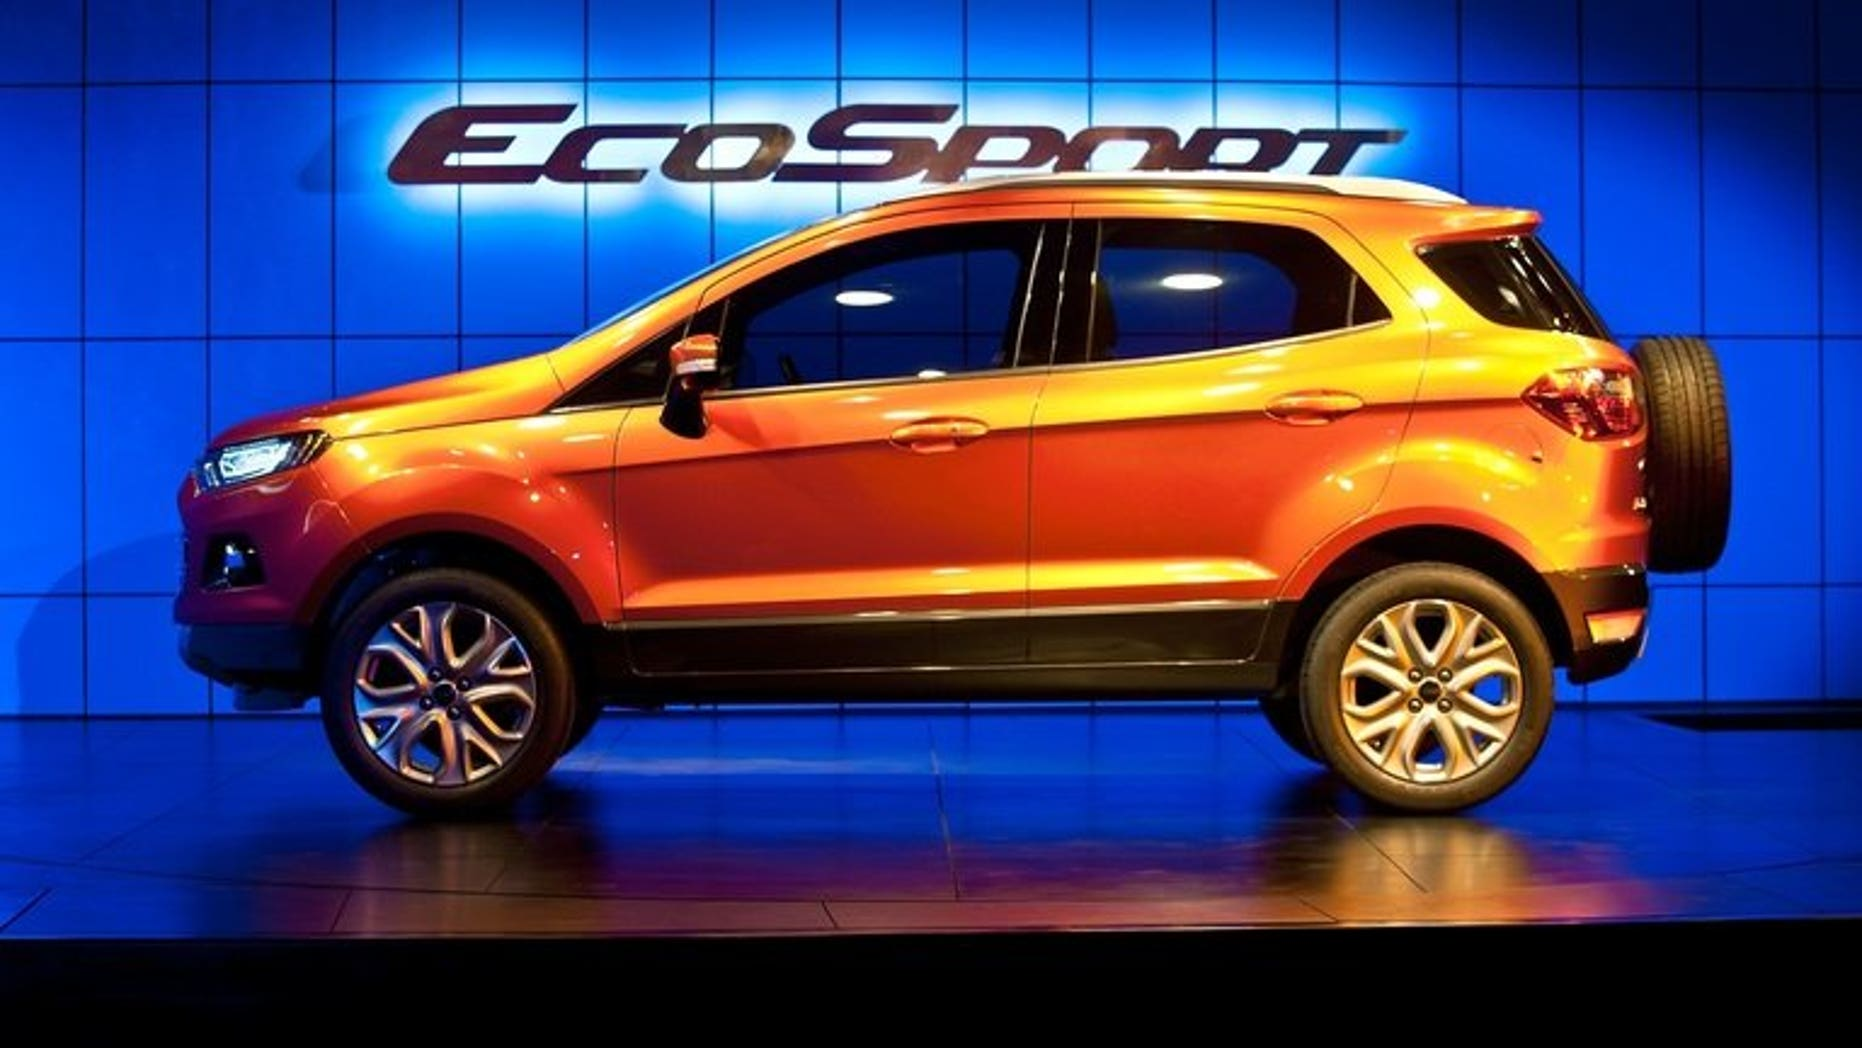 Ford EcoSport car is displayed during the unveiling event in New Delhi, on January 4, 2012. Ford India announced on Friday it was recalling the diesel versions of its EcoSport SUV to fix an engine starting problem.